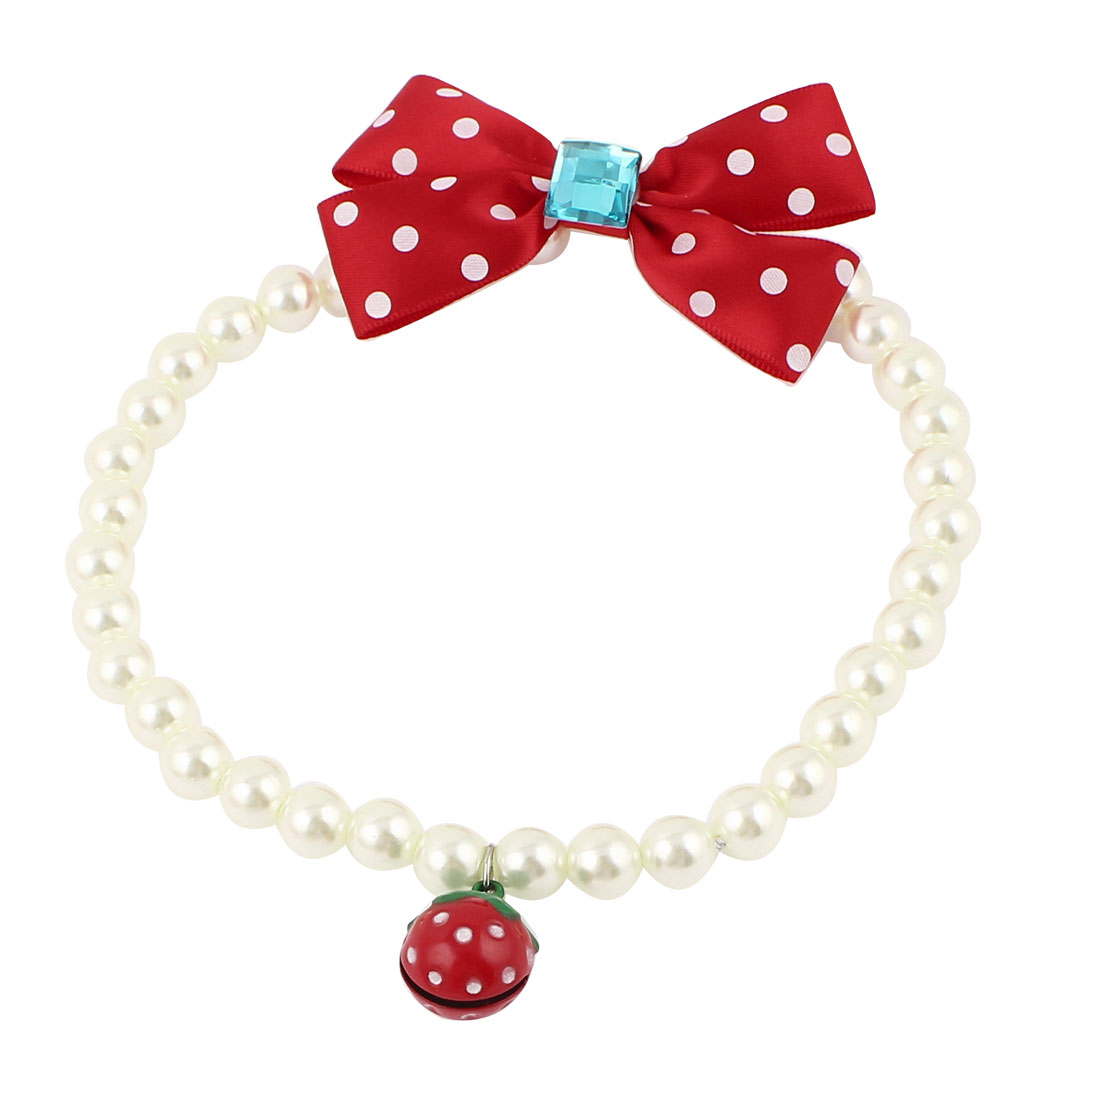 Metal Bell Pendant Bowknot Accent Pet Dog Plastic Beads Pearls Collar Necklace White Red L